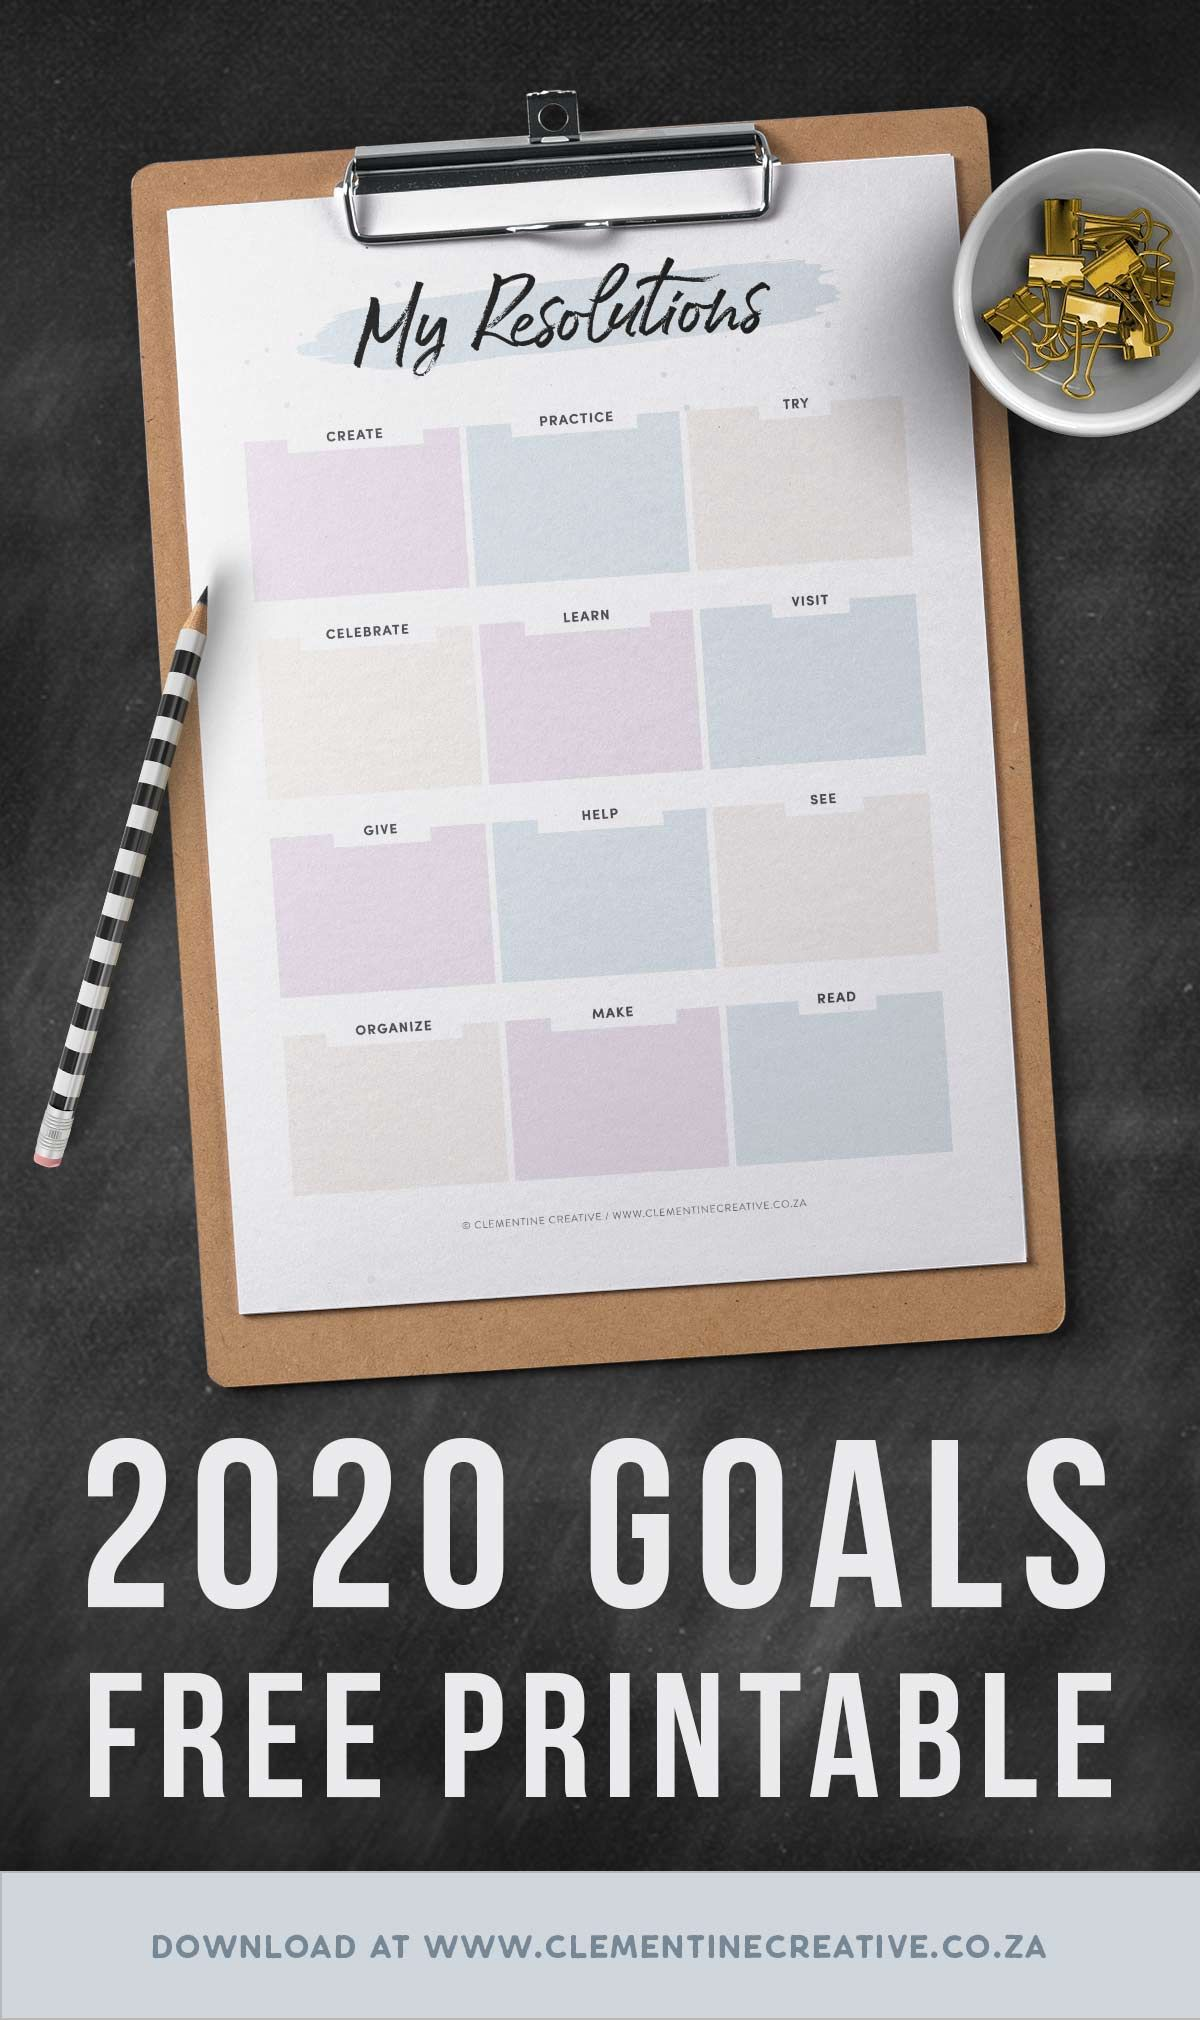 Set New Year S Goals With This Resolutions Worksheet Free Printable Pdf Planner Printables Free Free Printables New Year Goals